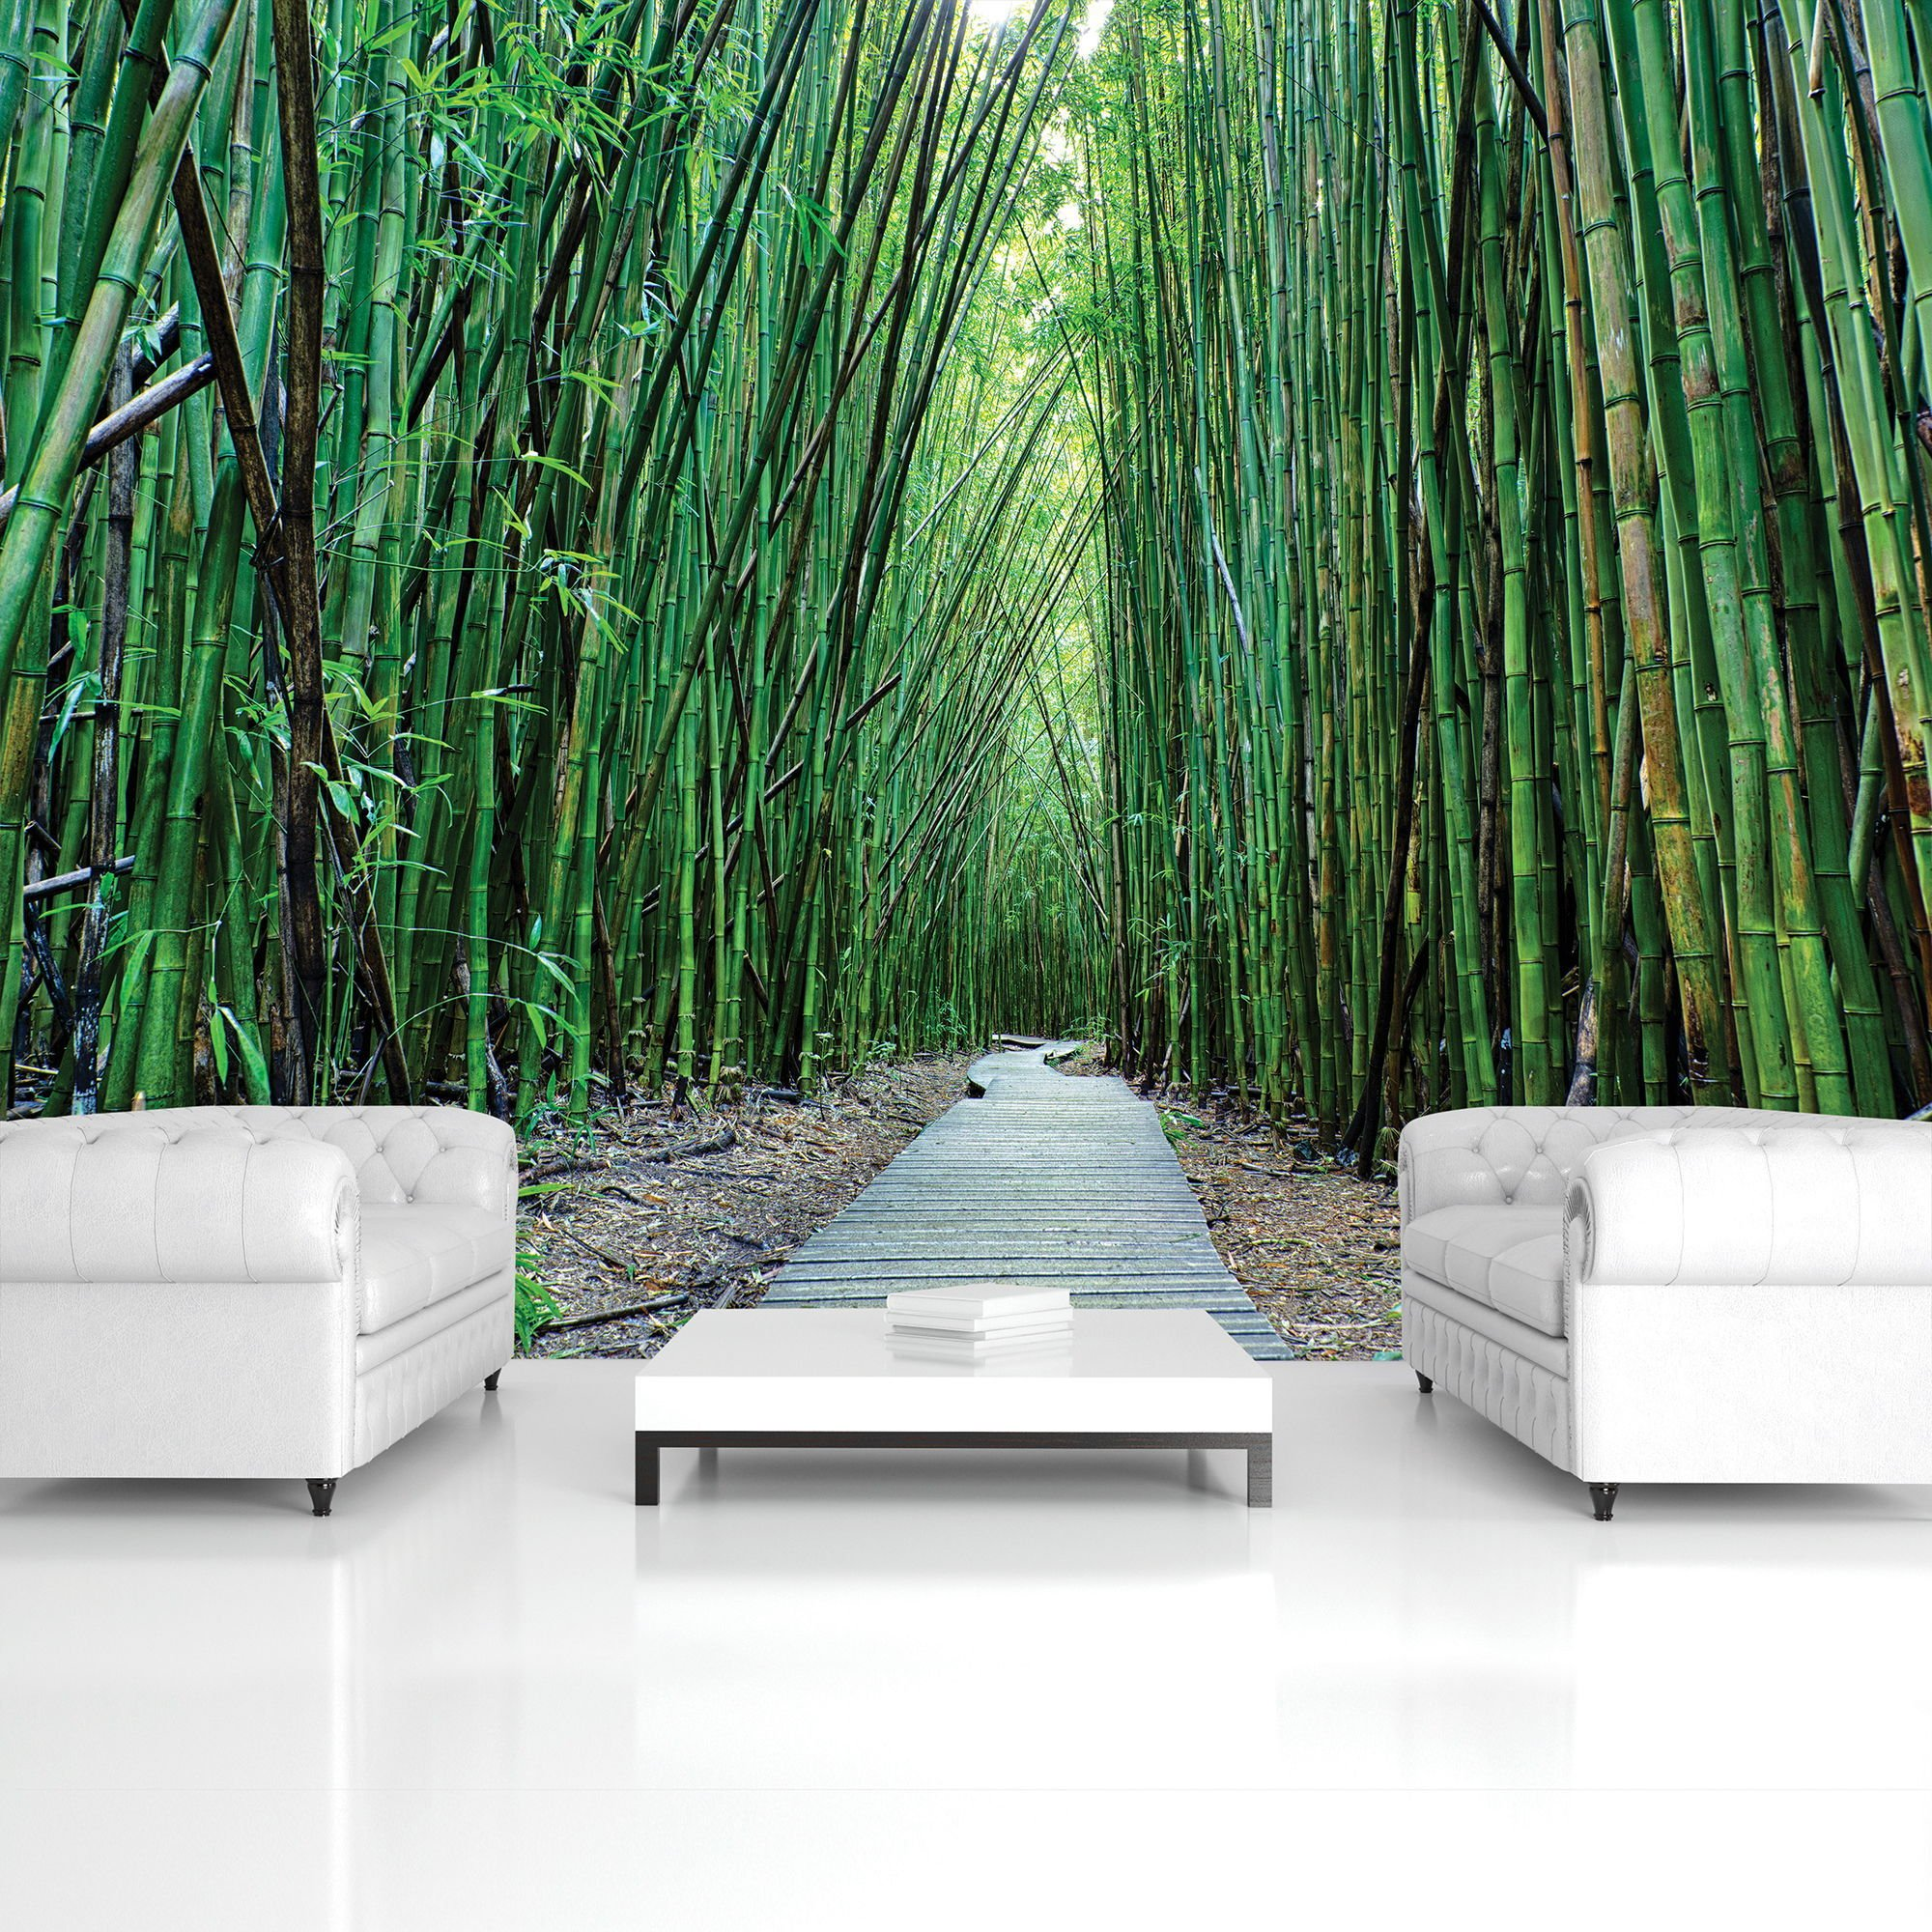 Wall mural: Bamboo forest (2) - 254x368 cm